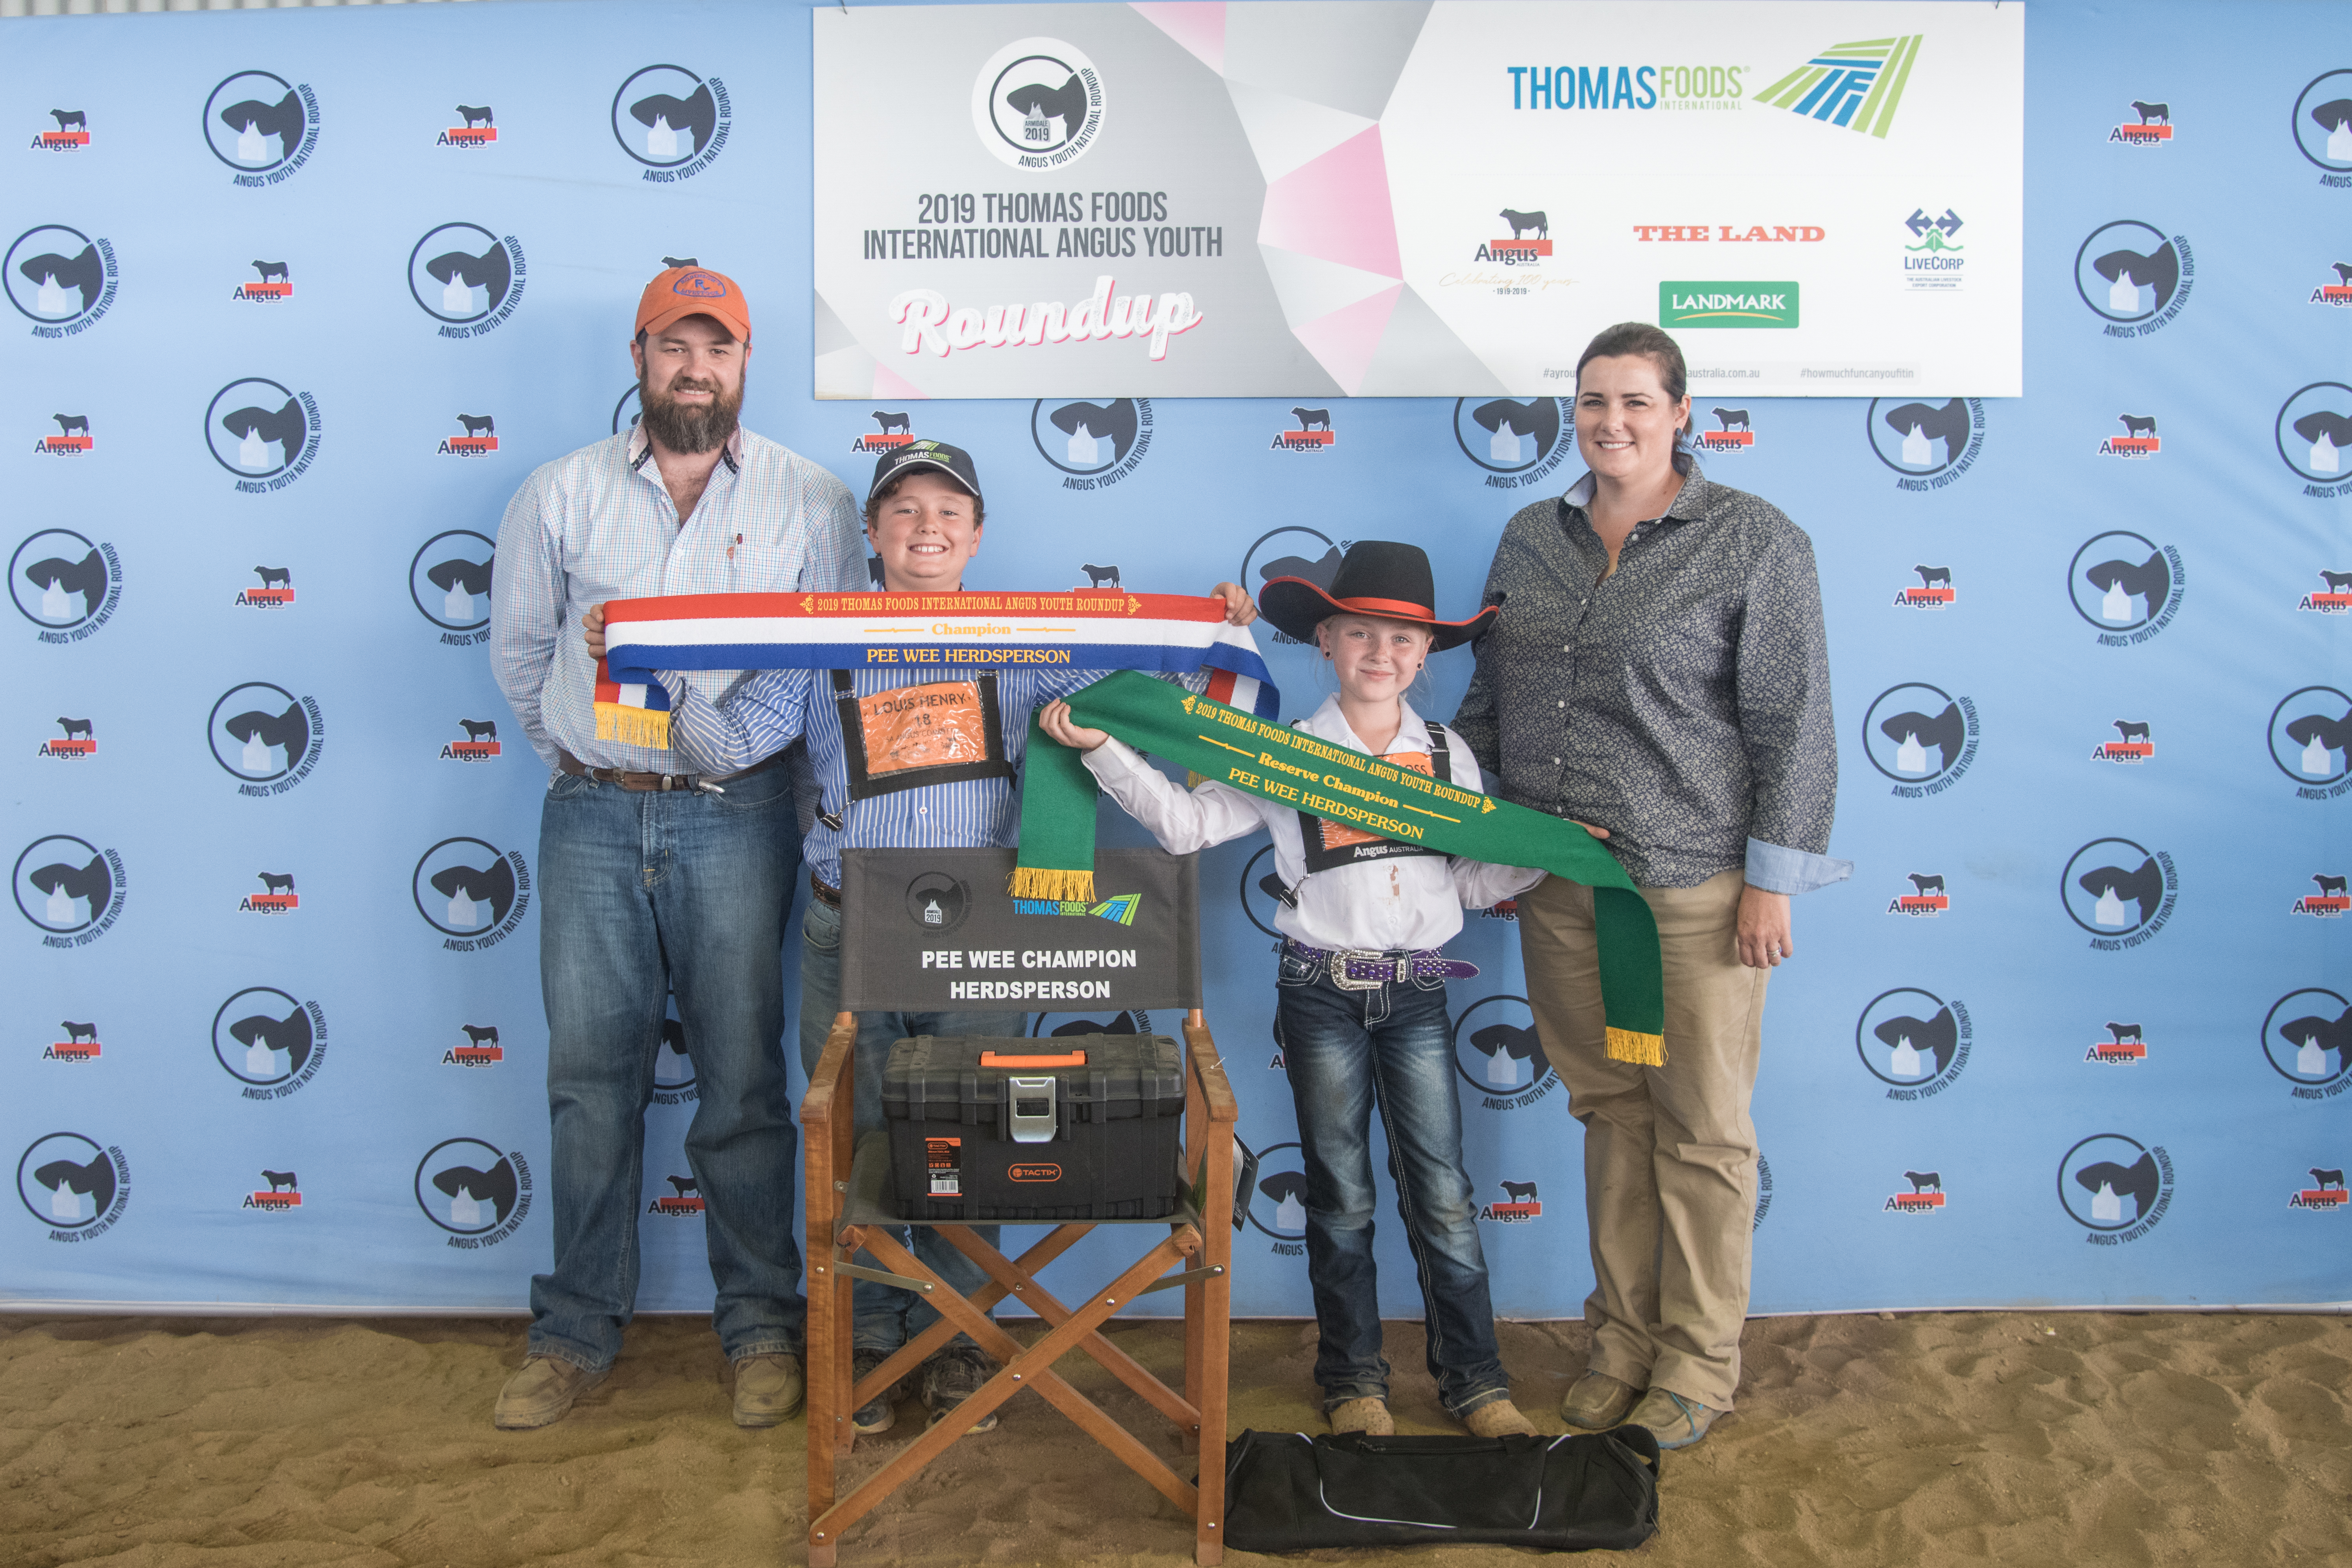 Hayley Robinson (right) at the 2019 Thomas Foods International Angus Youth Roundup with Brad Robinson, Louis Henry and Taylah Hobbs